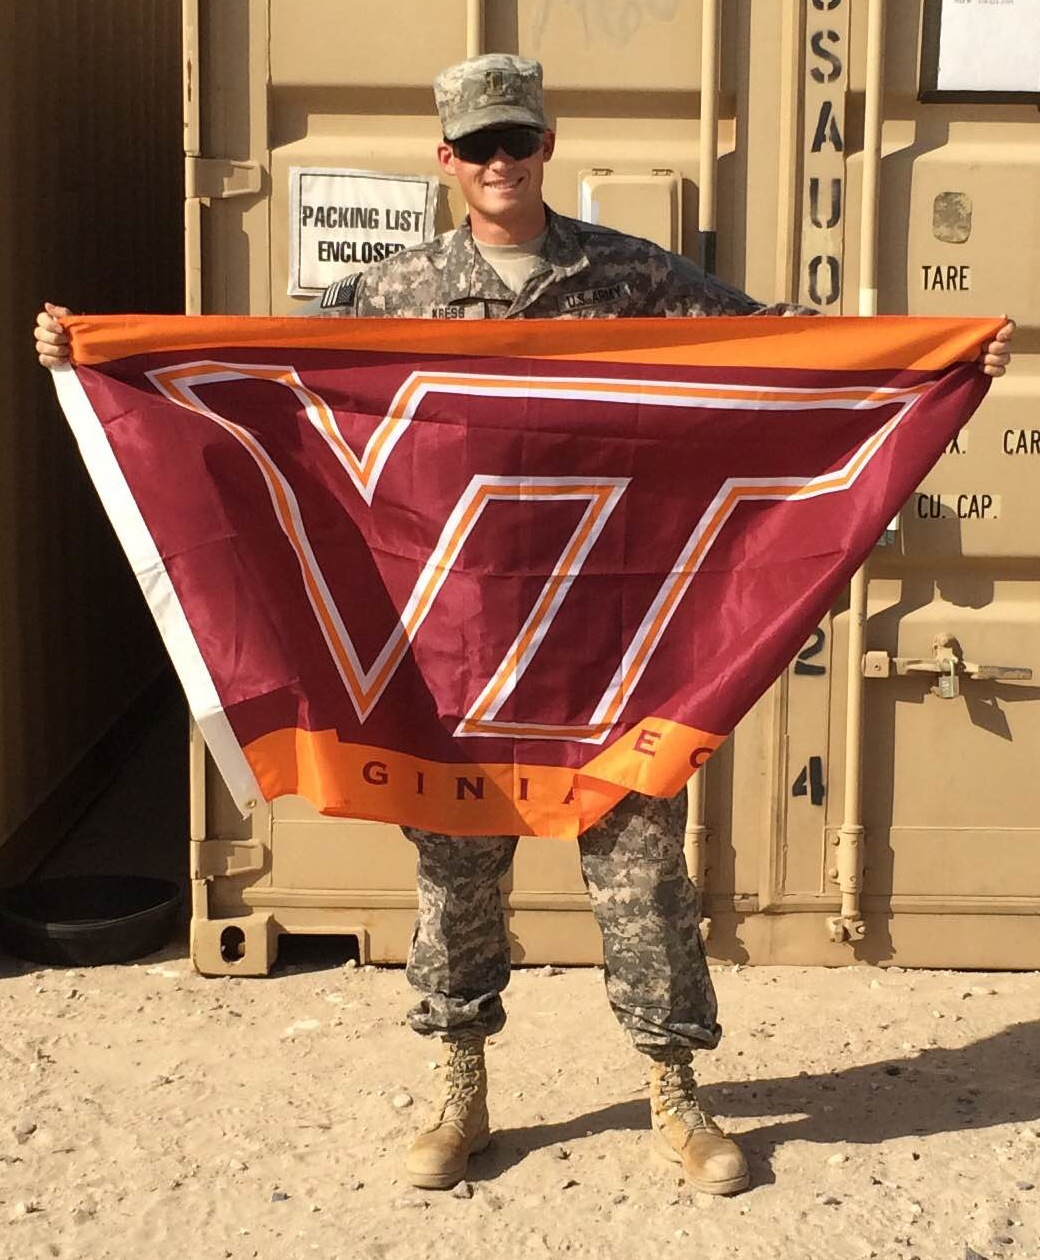 2nd Lt. Andy Kress, U.S. Army, Virginia Tech Corps of Cadets Class of 2013 in Kuwait.